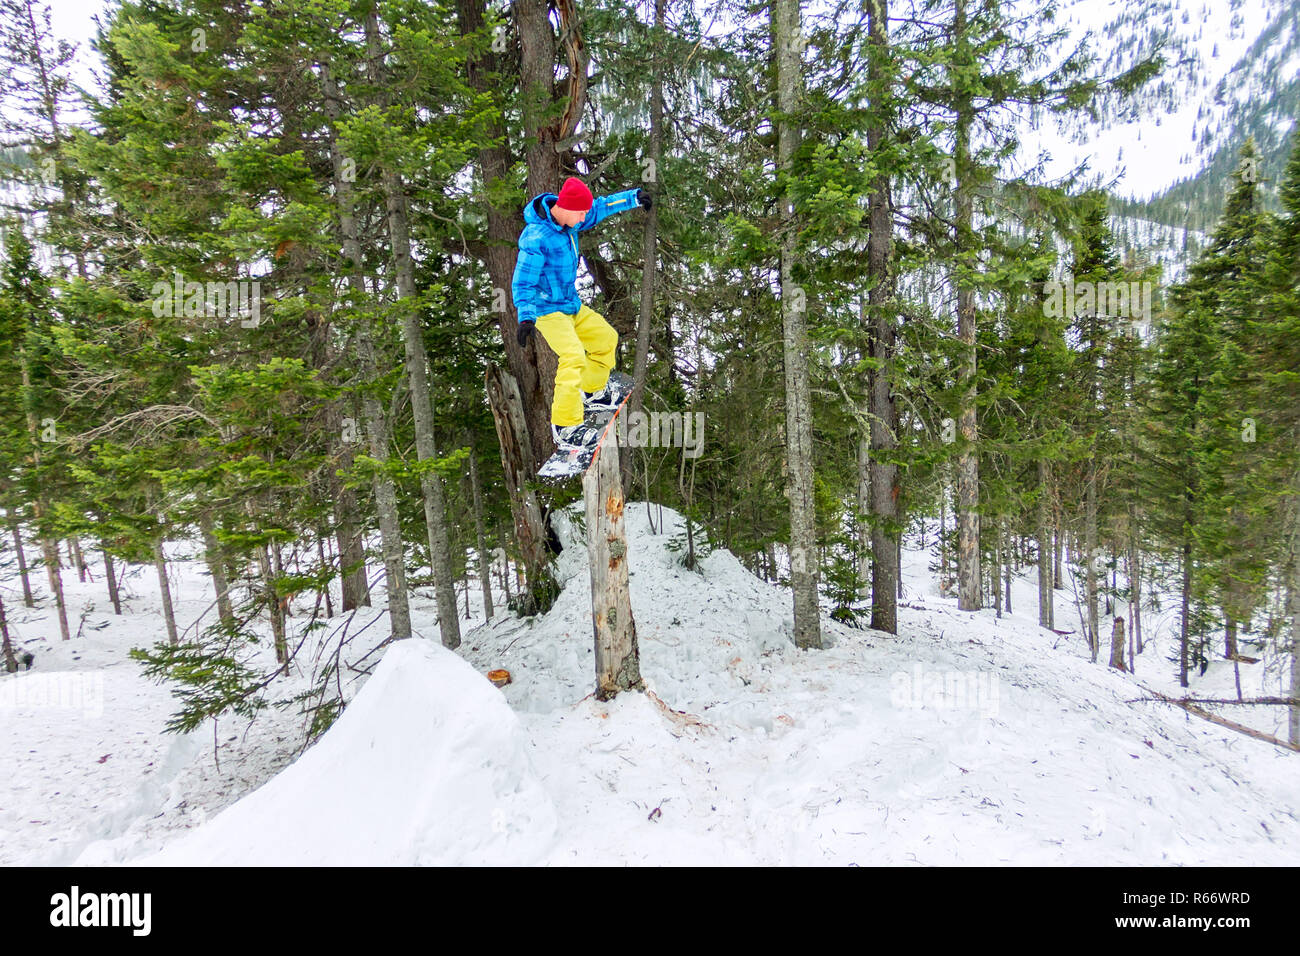 Freestyle snowboarder makes flatland standing on a log in a forest in winter mountains Stock Photo